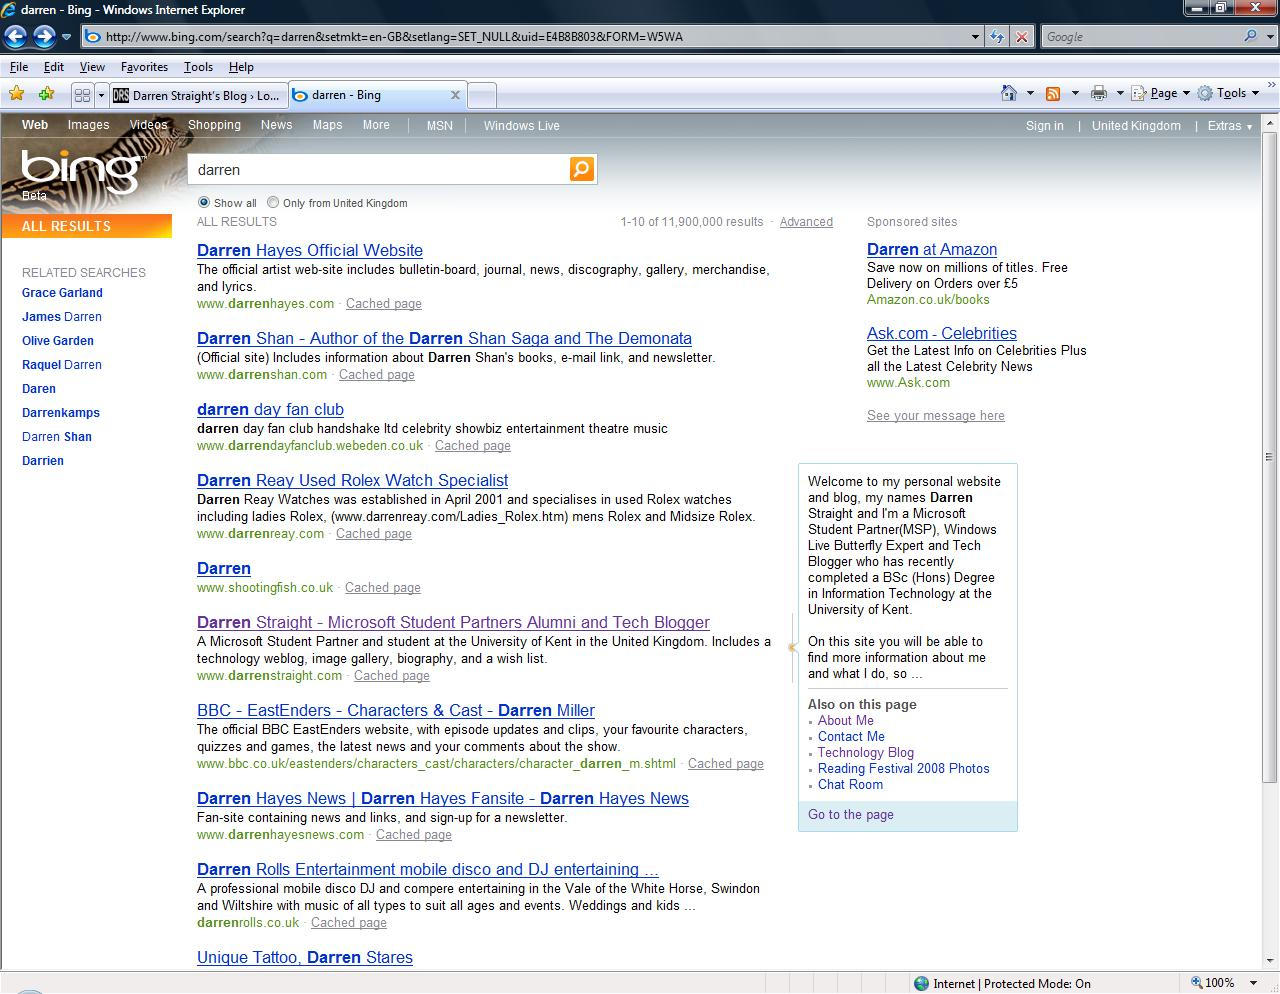 My Website Position In Bing For July 2009